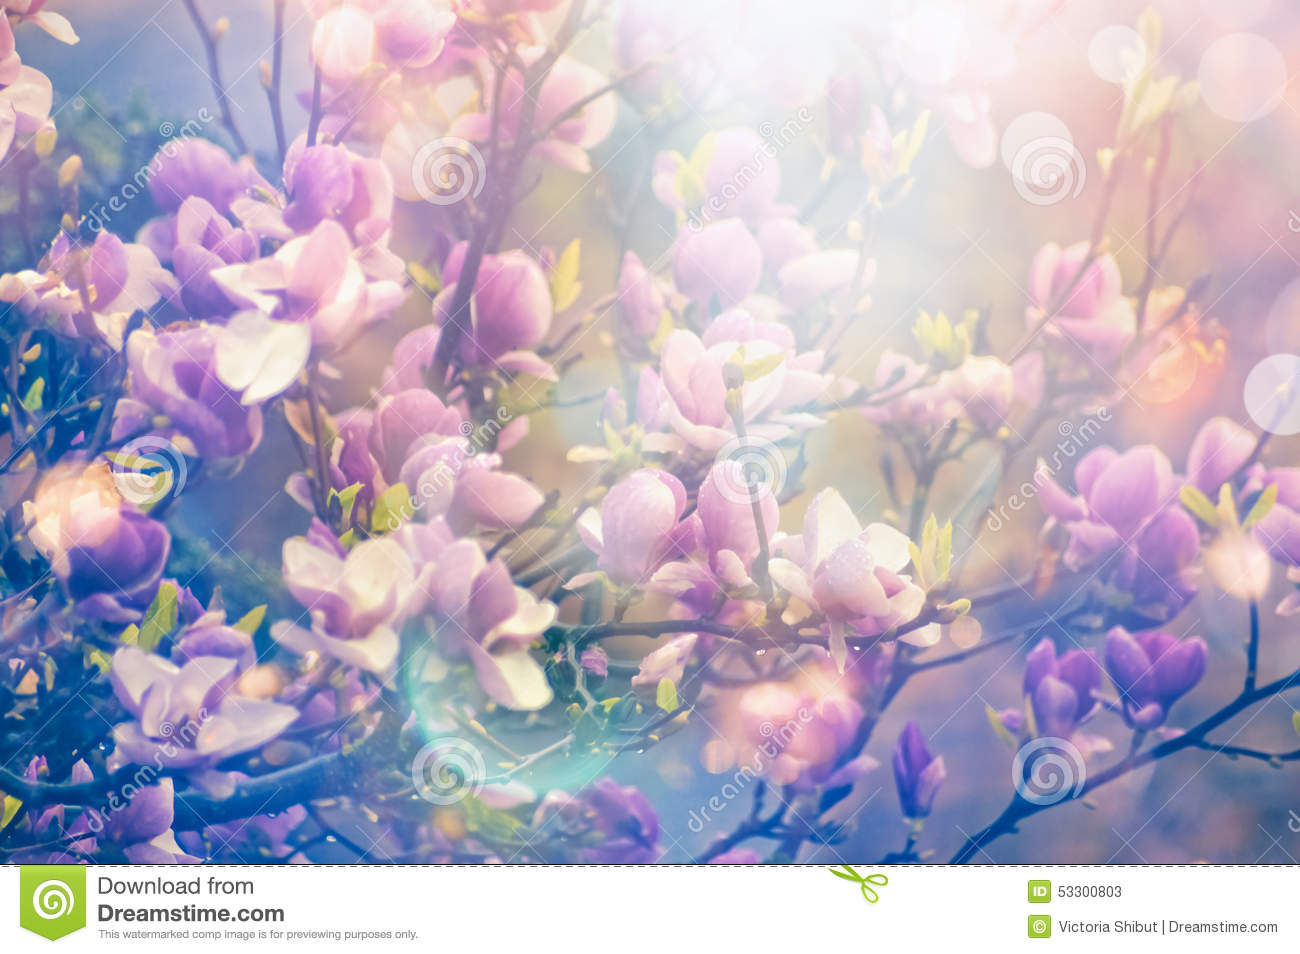 Magnolia spring blooming garden, blurred nature background with sun shine and bokeh